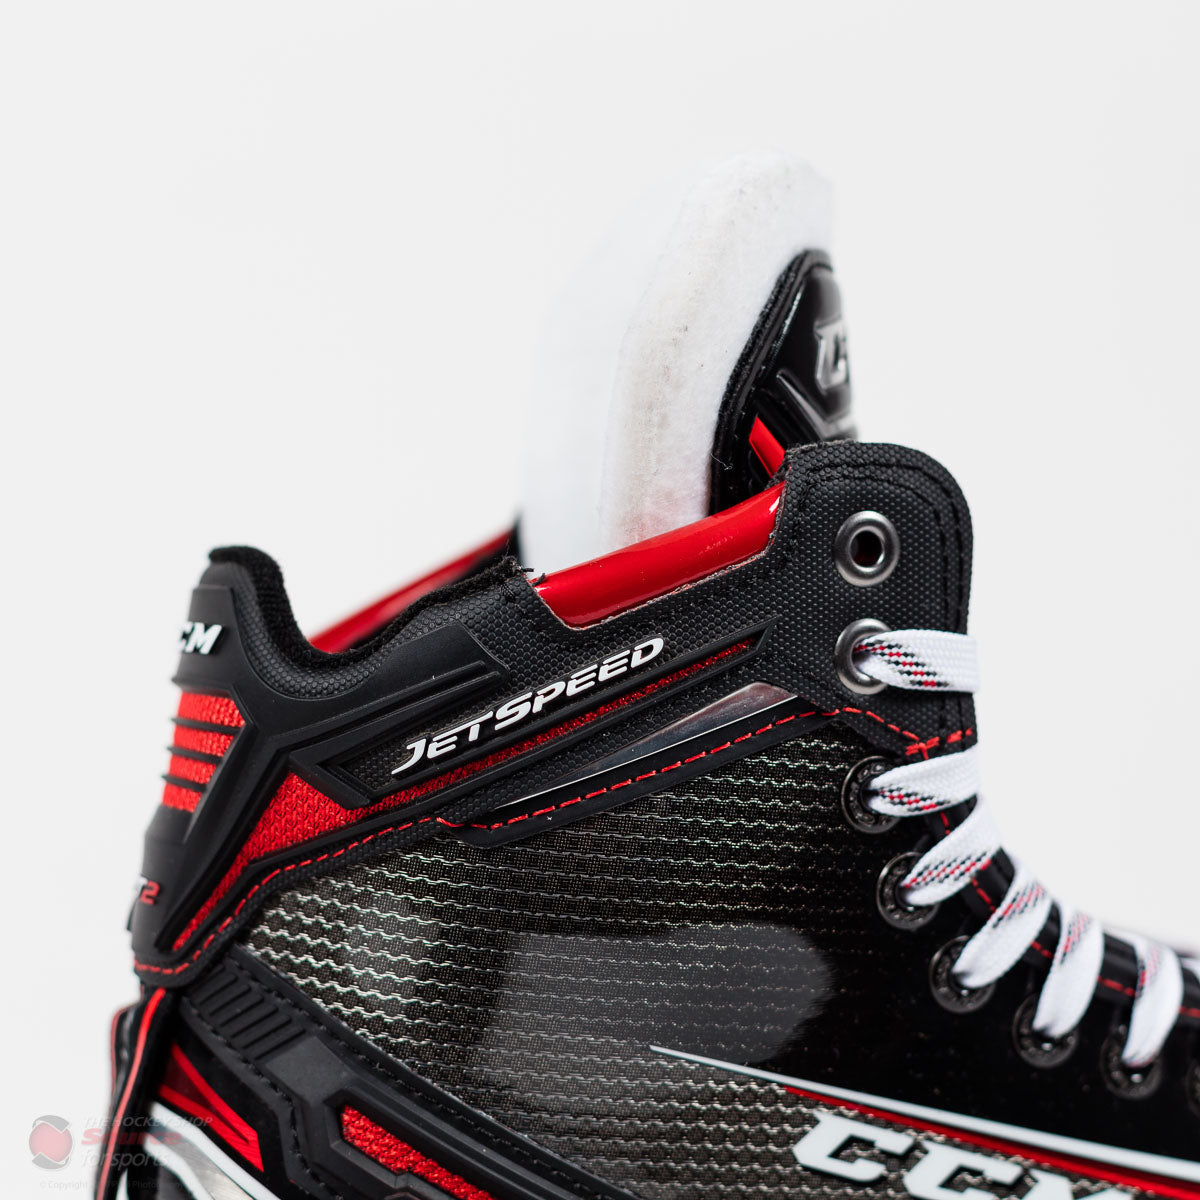 CCM Jetspeed FT2 Senior Goalie Skates